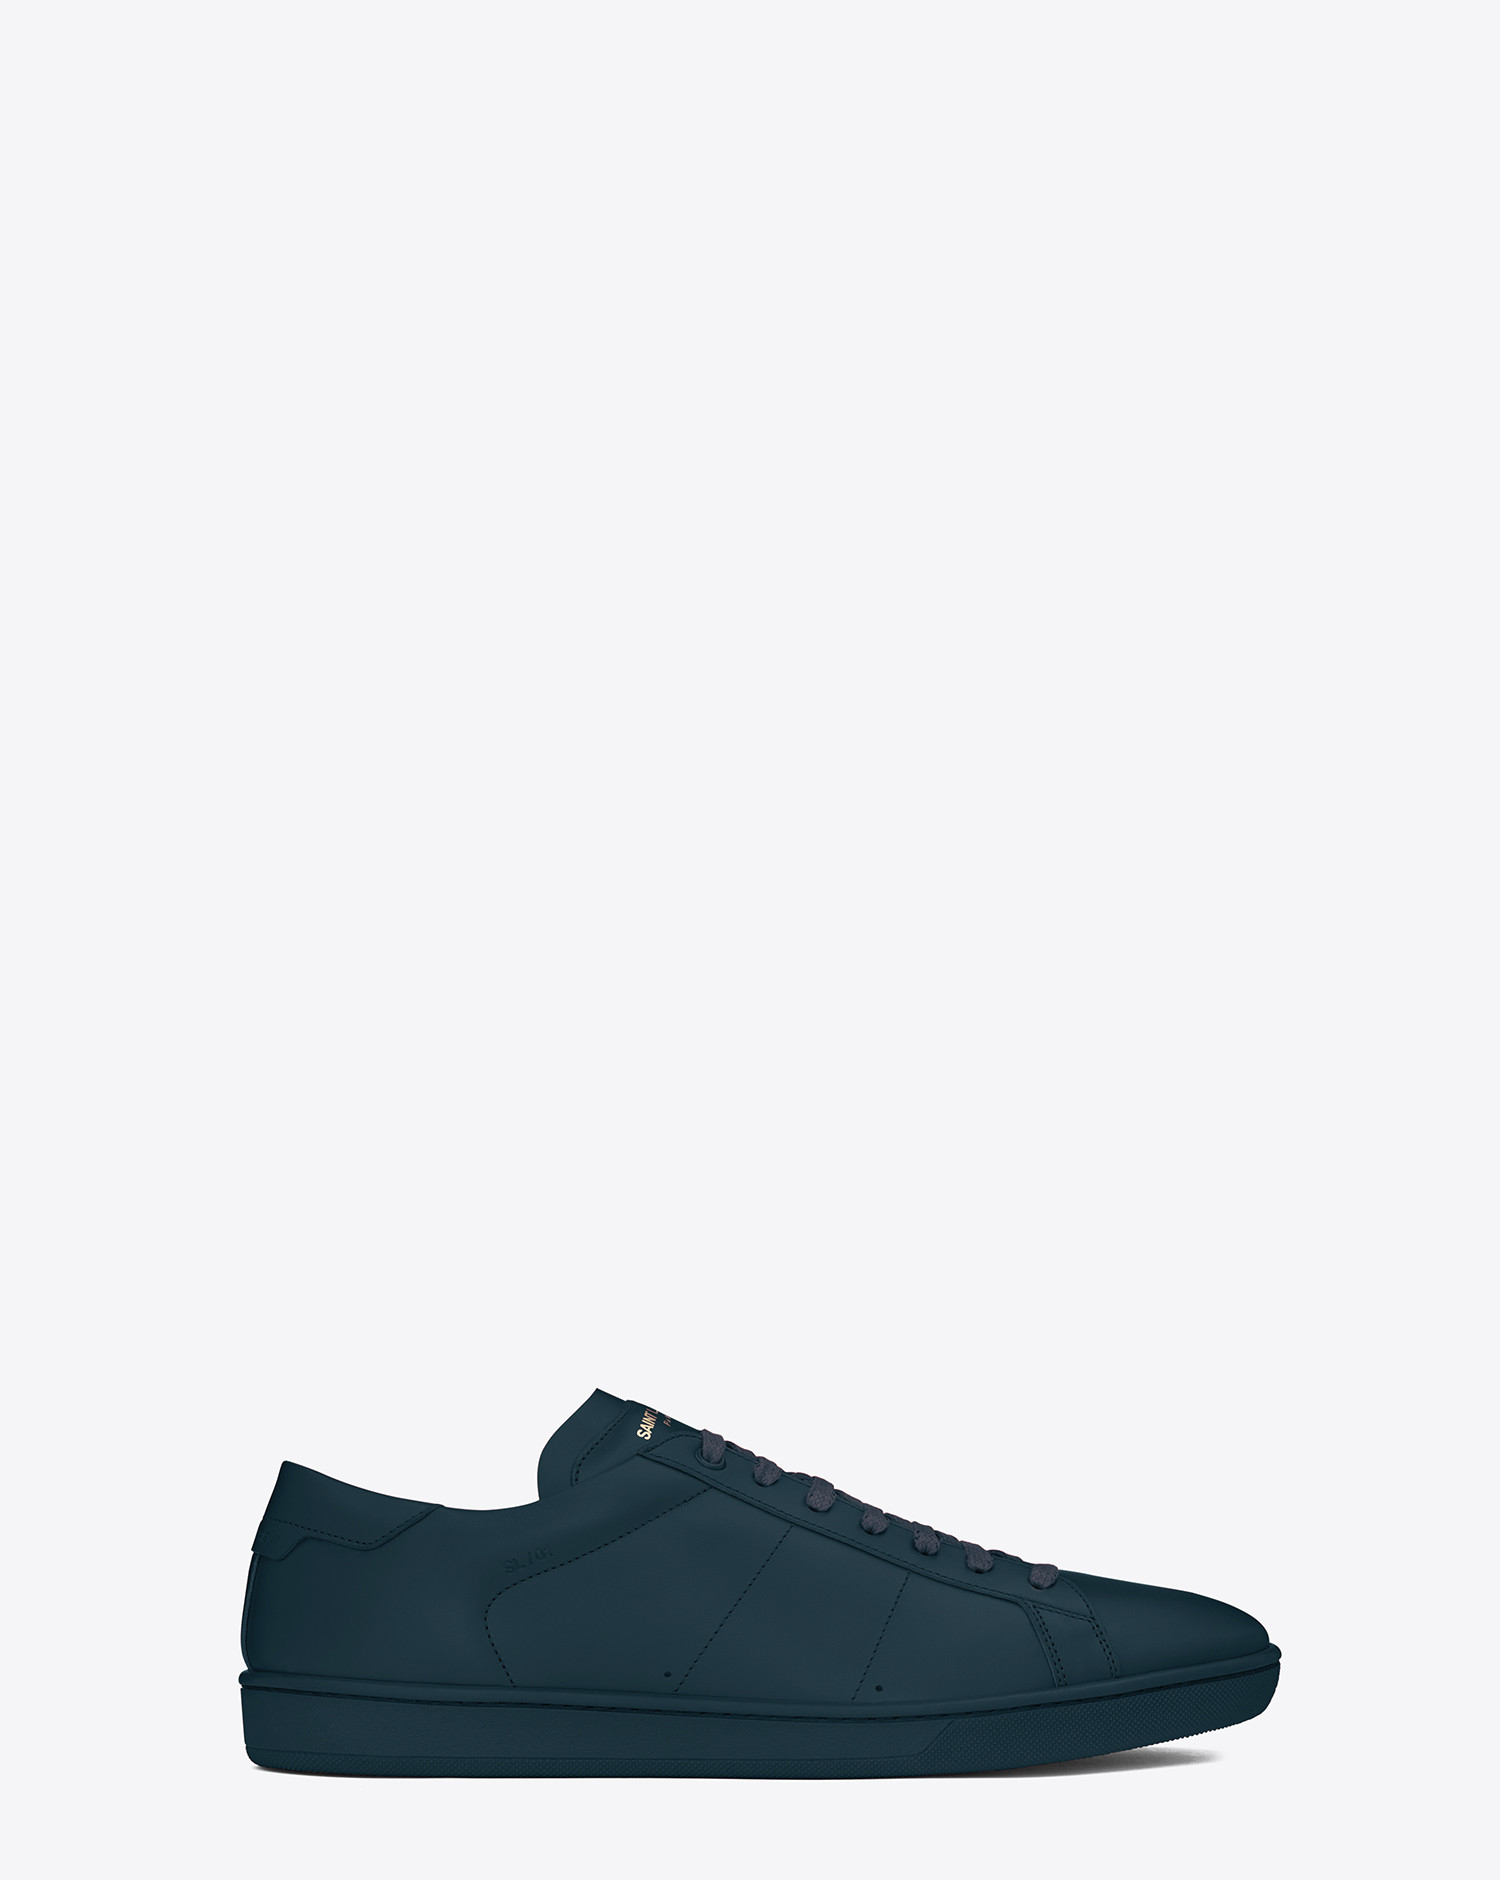 saint laurent sl 01 court classic sneaker in indigo leather in blue for men lyst. Black Bedroom Furniture Sets. Home Design Ideas